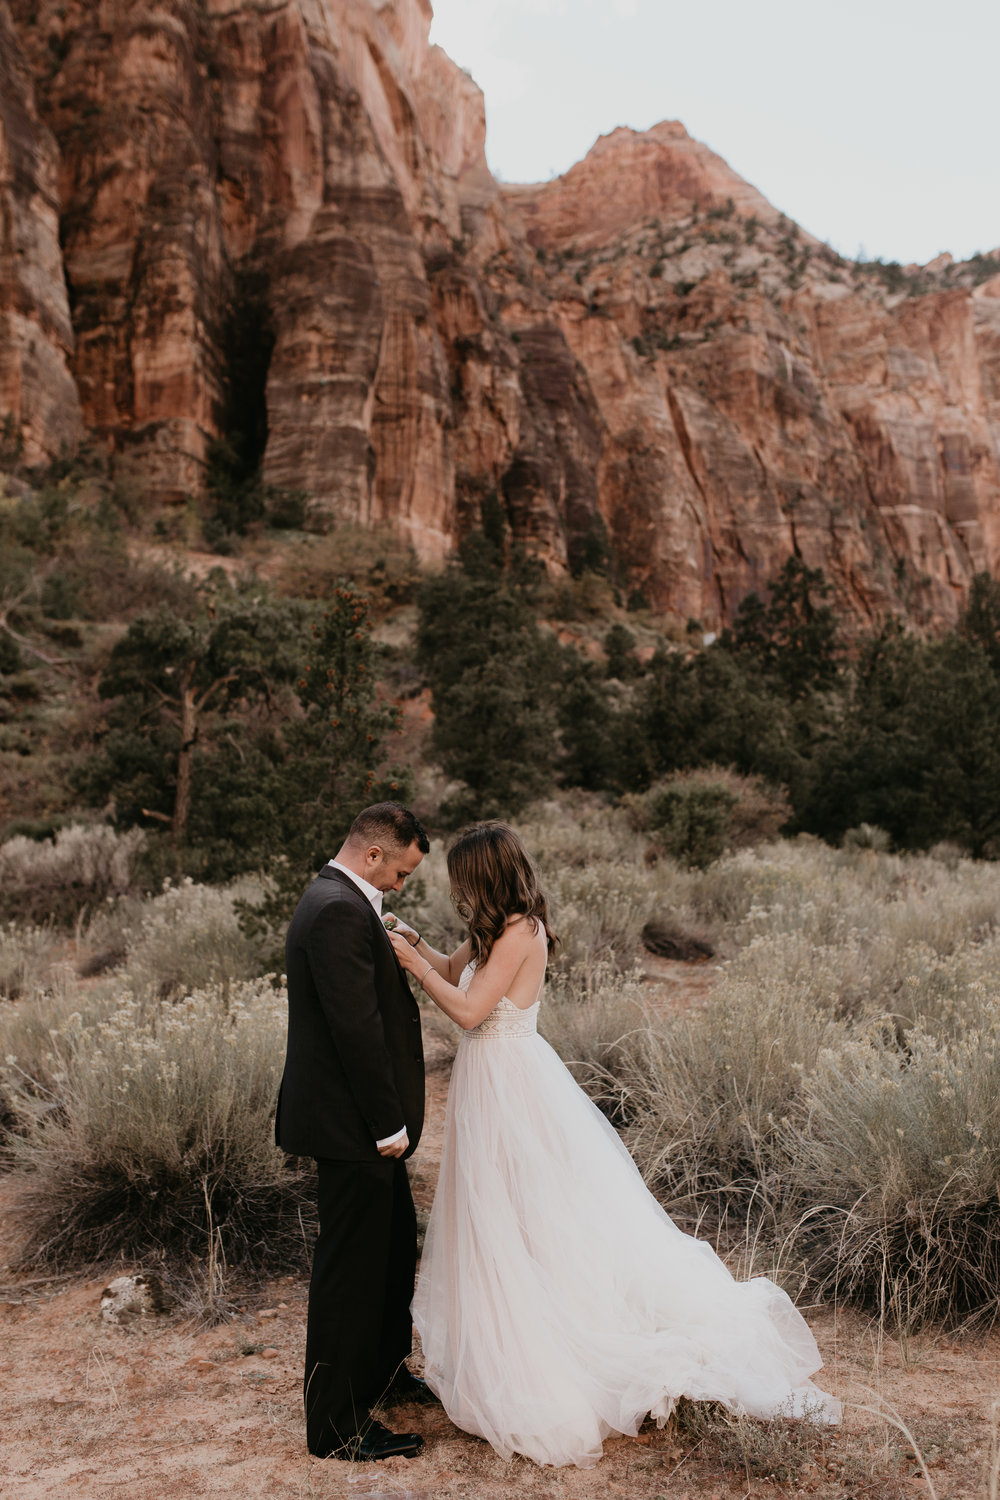 nicole-daacke-photography-zion-national-park-elopement-photographer-canyon-overlook-trail-elope-hiking-adventure-wedding-photos-fall-utah-red-rock-canyon-stgeorge-eloping-photographer-13.jpg